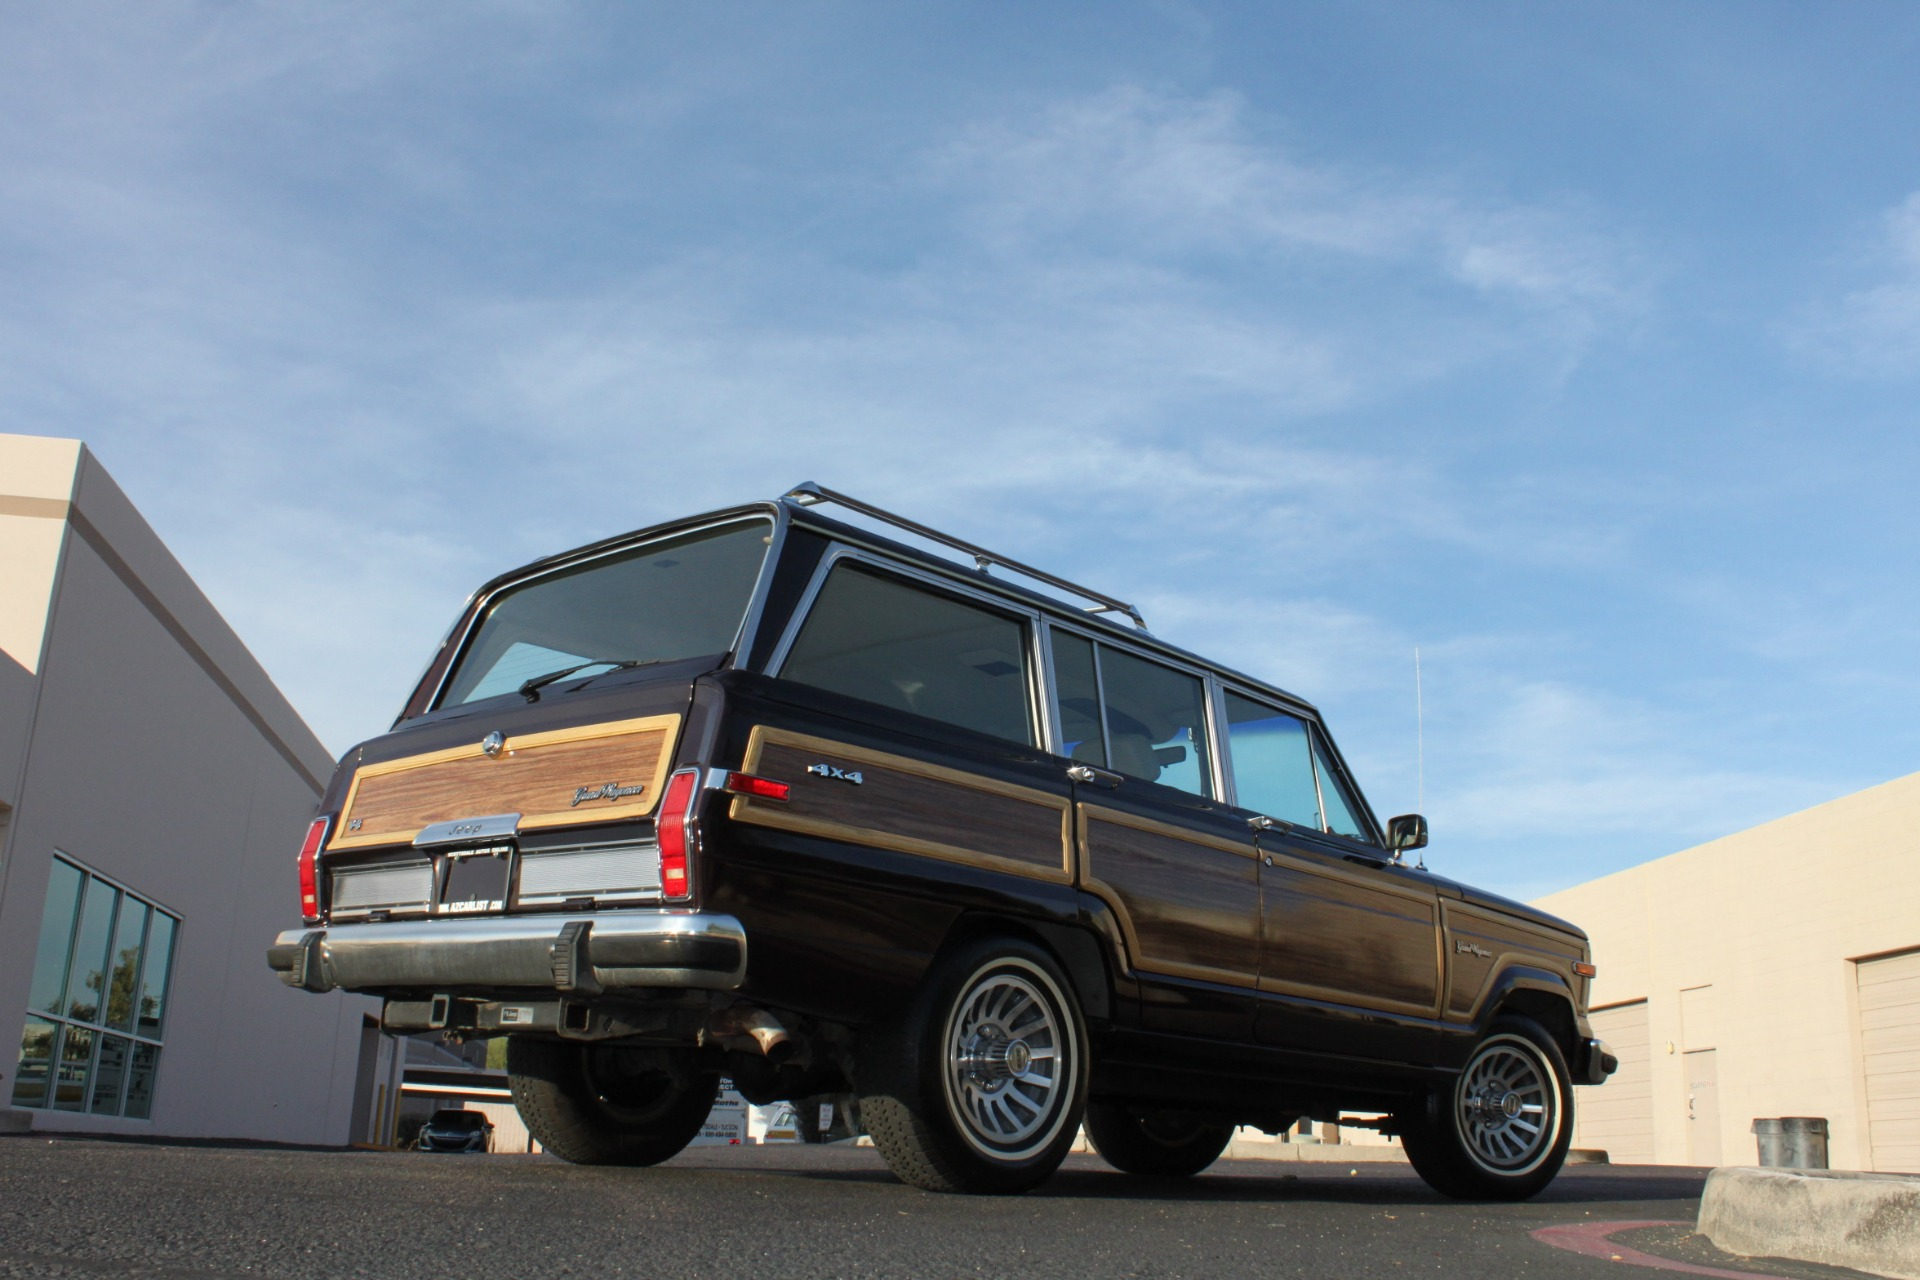 Used-1990-Jeep-Grand-Wagoneer-4X4-Dodge